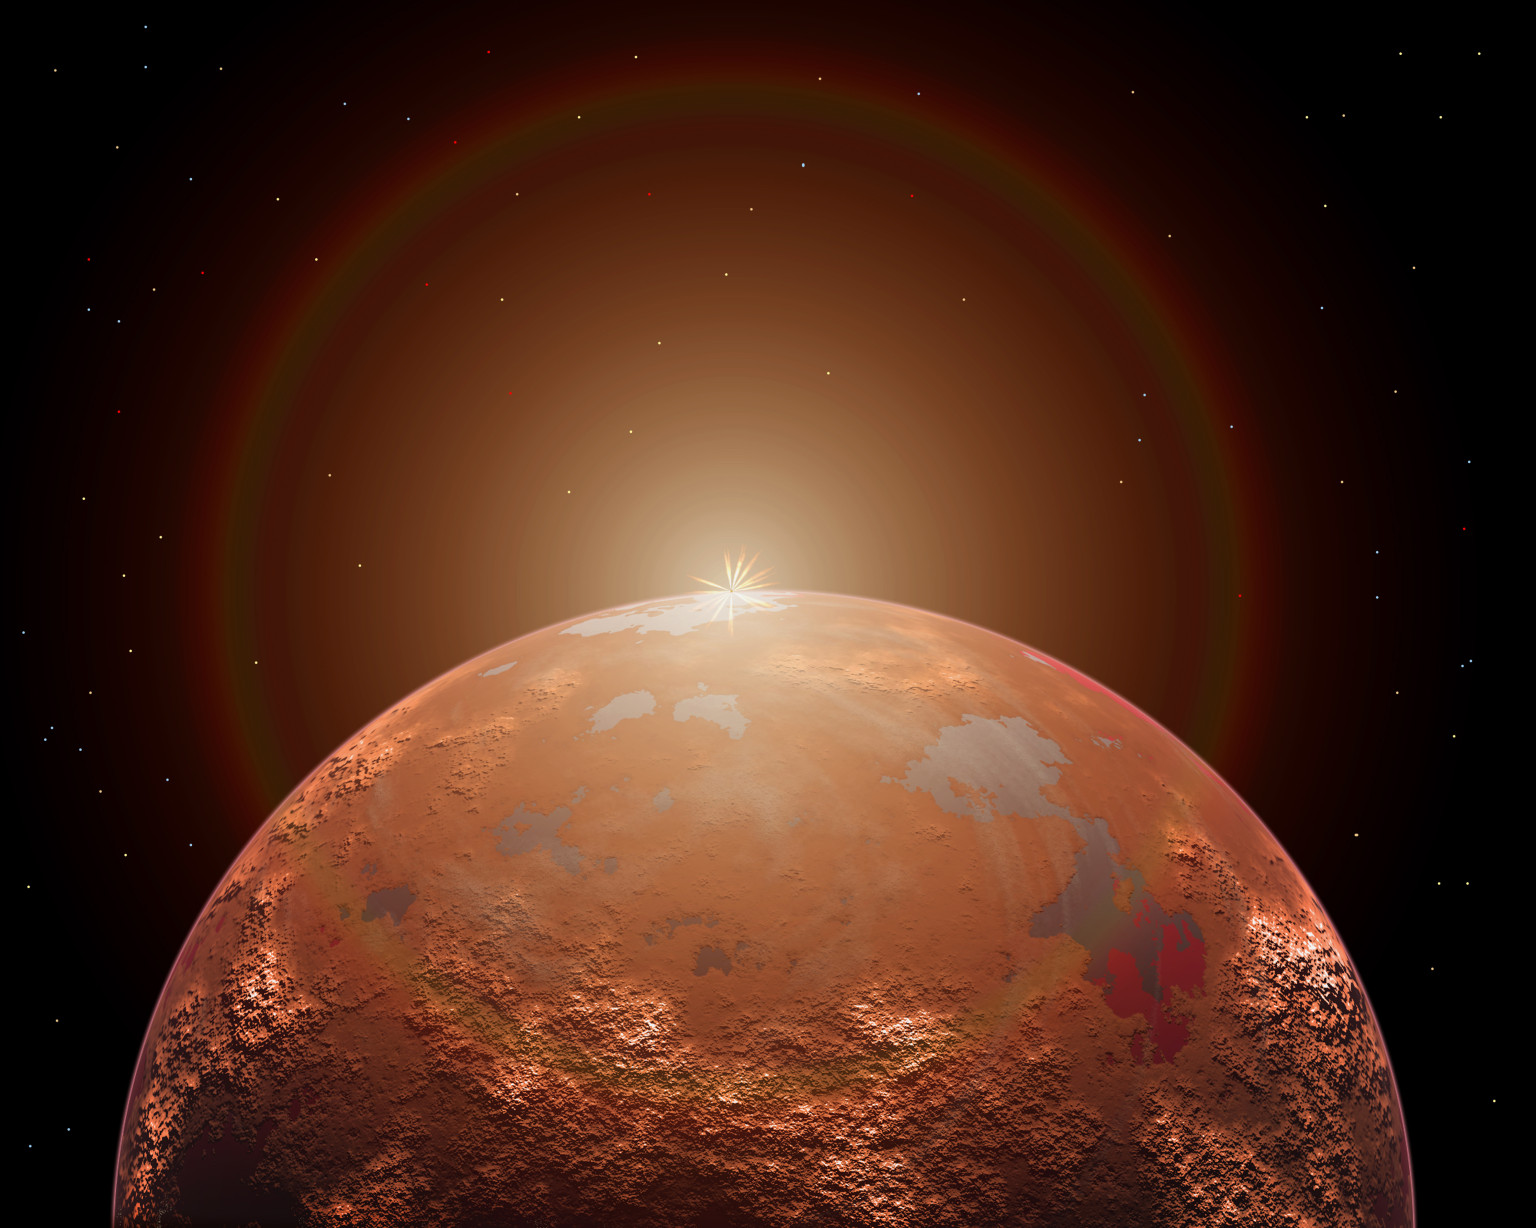 Artist's concept of a distant red planet orbiting its Sun. This alien world shows definite signs of water, and therefore maybe life itself.